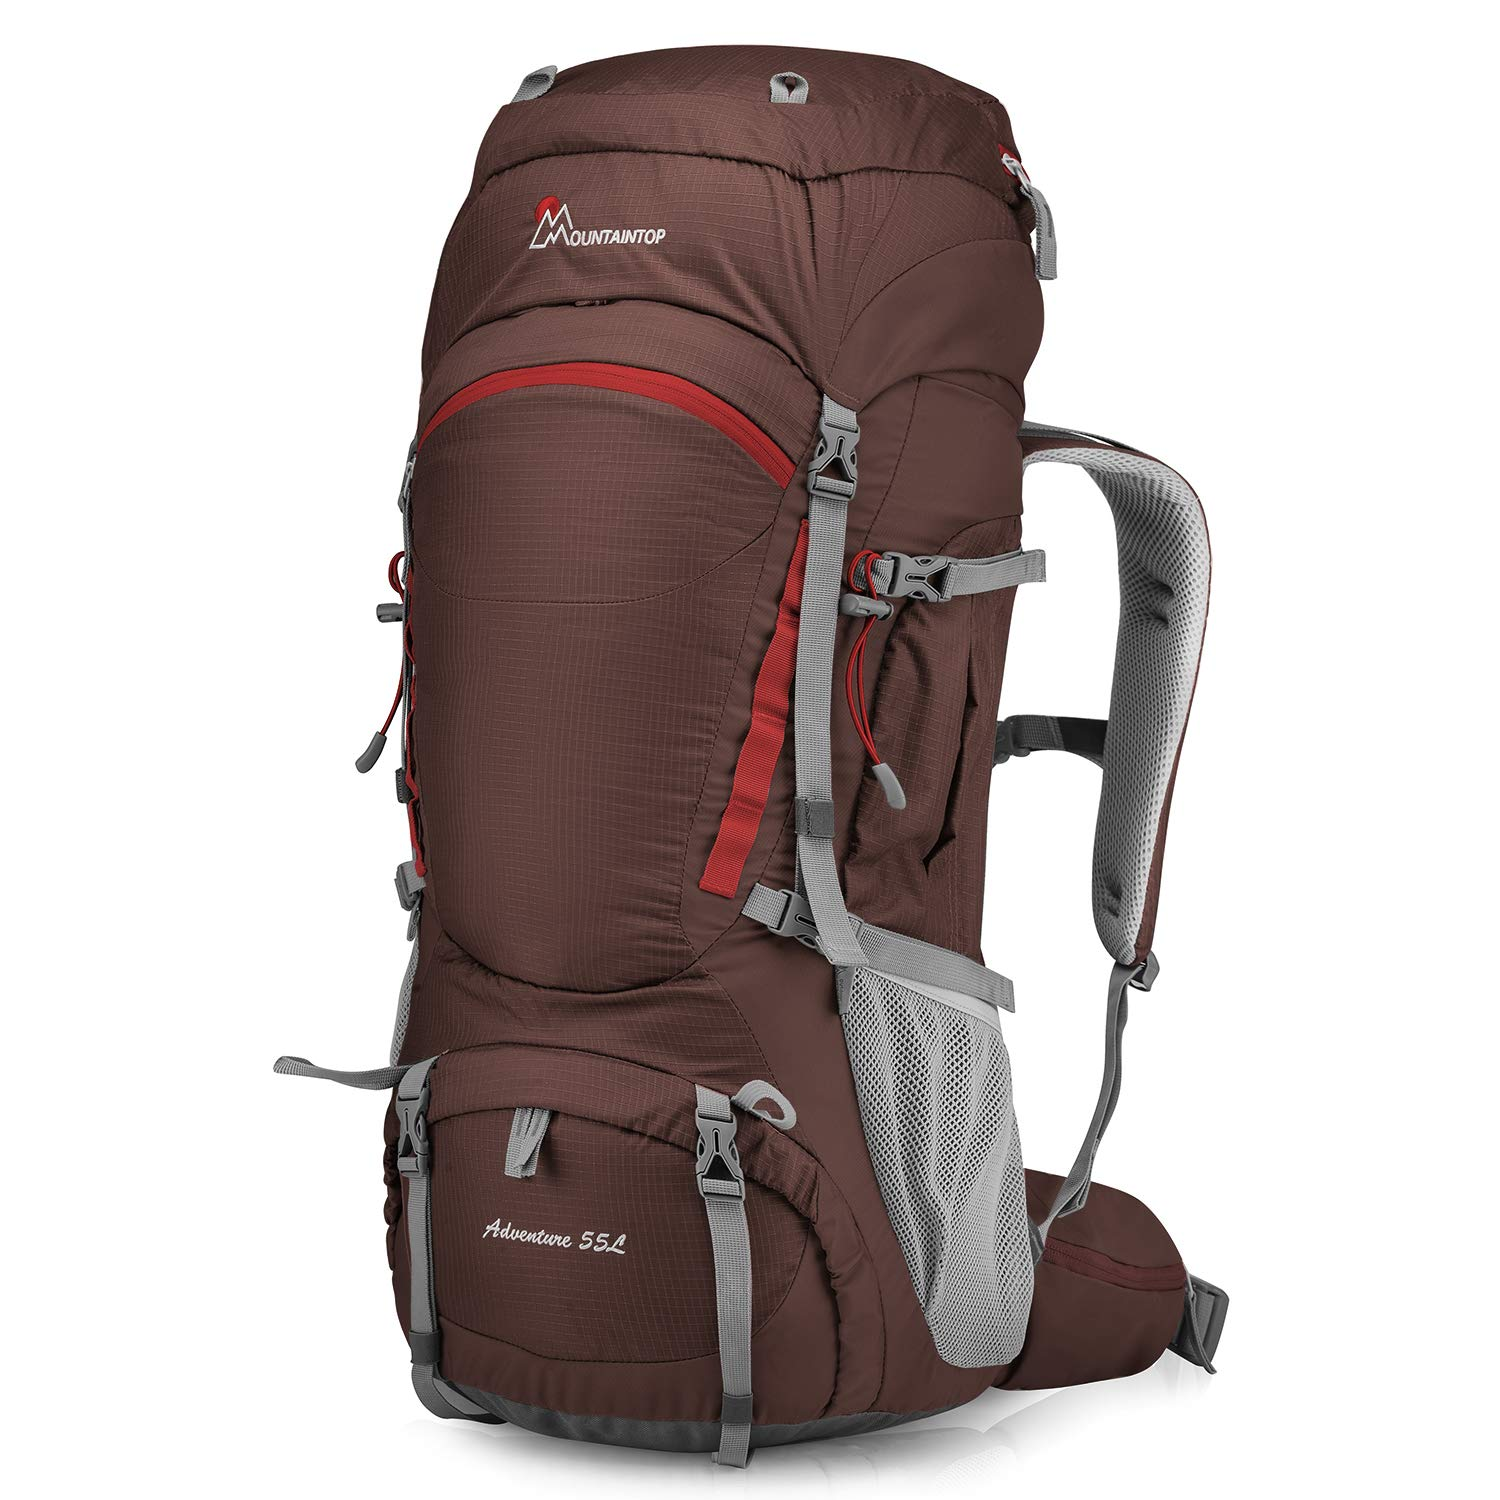 Mountaintop 55L/80L Hiking Backpack with Rain Cover by MOUNTAINTOP